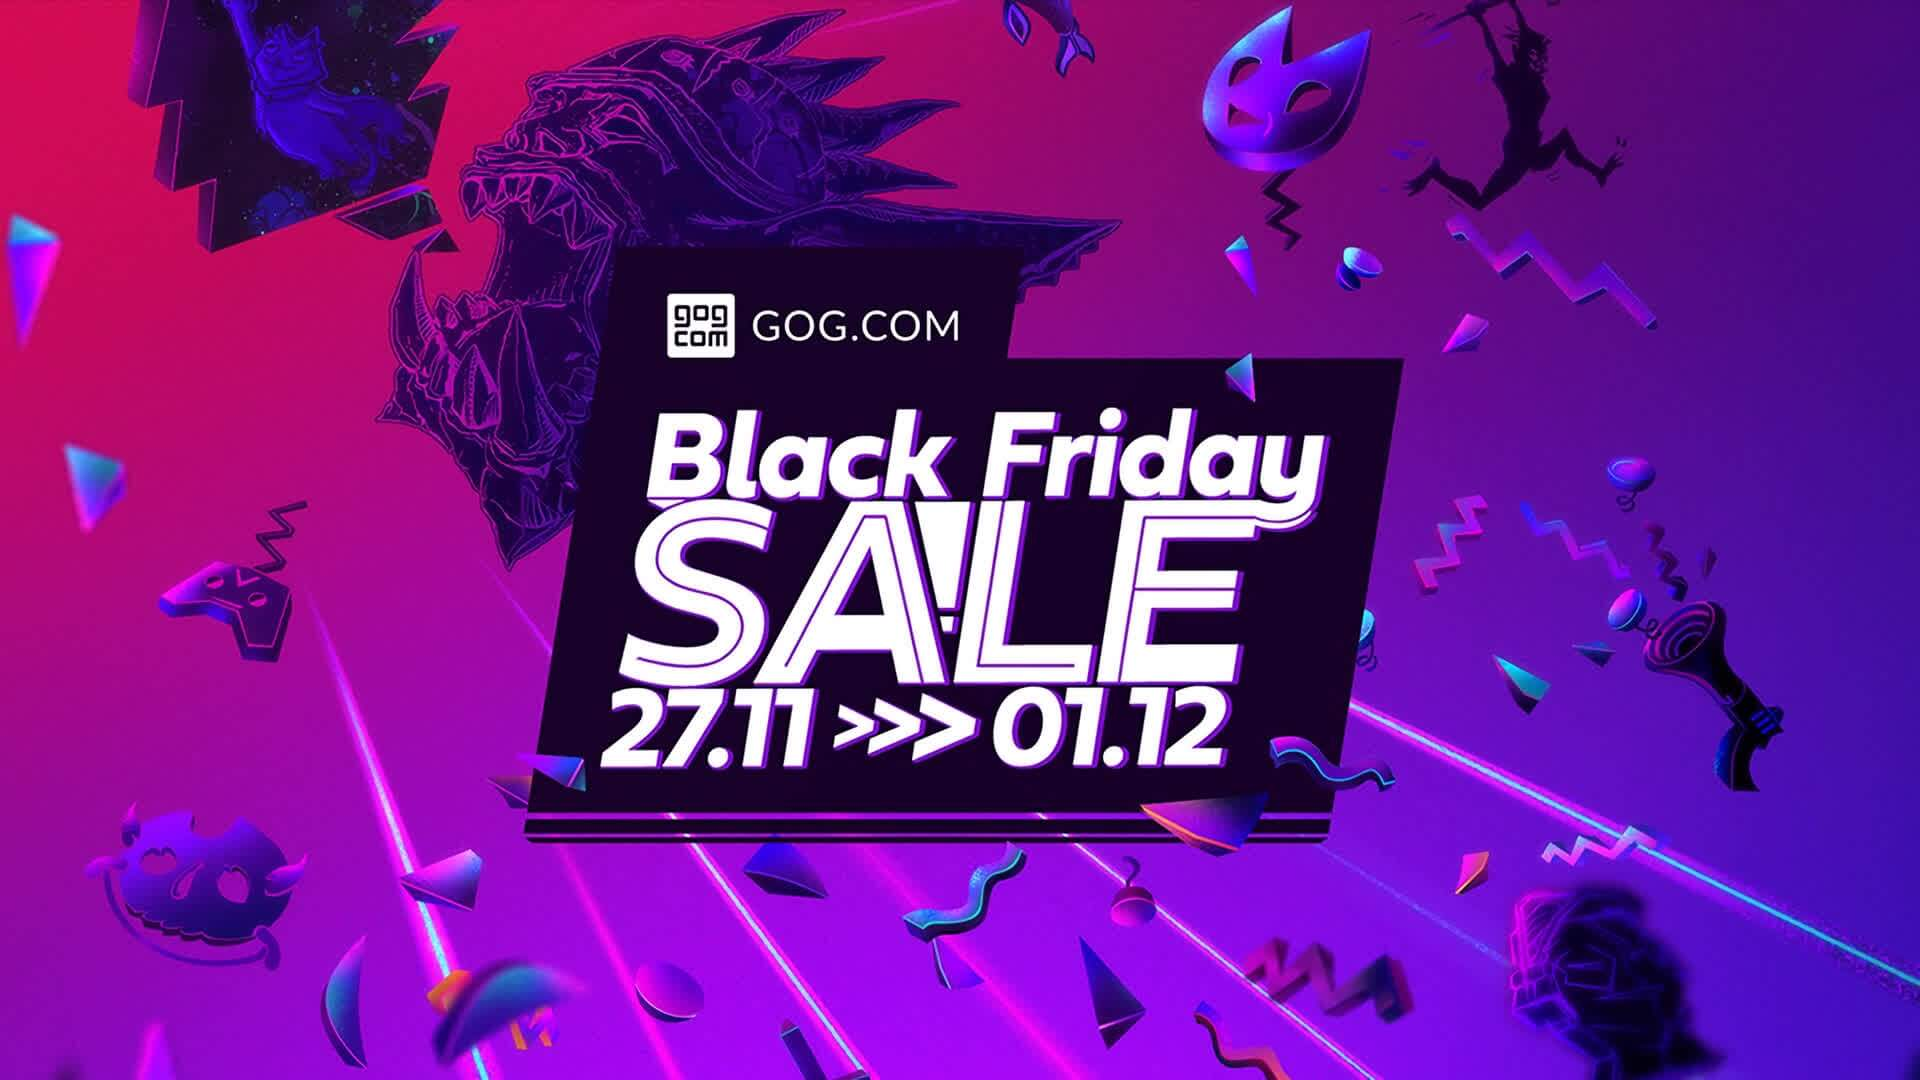 GOG Black Friday Sales Start Now with Flash Sales Changing Everyday